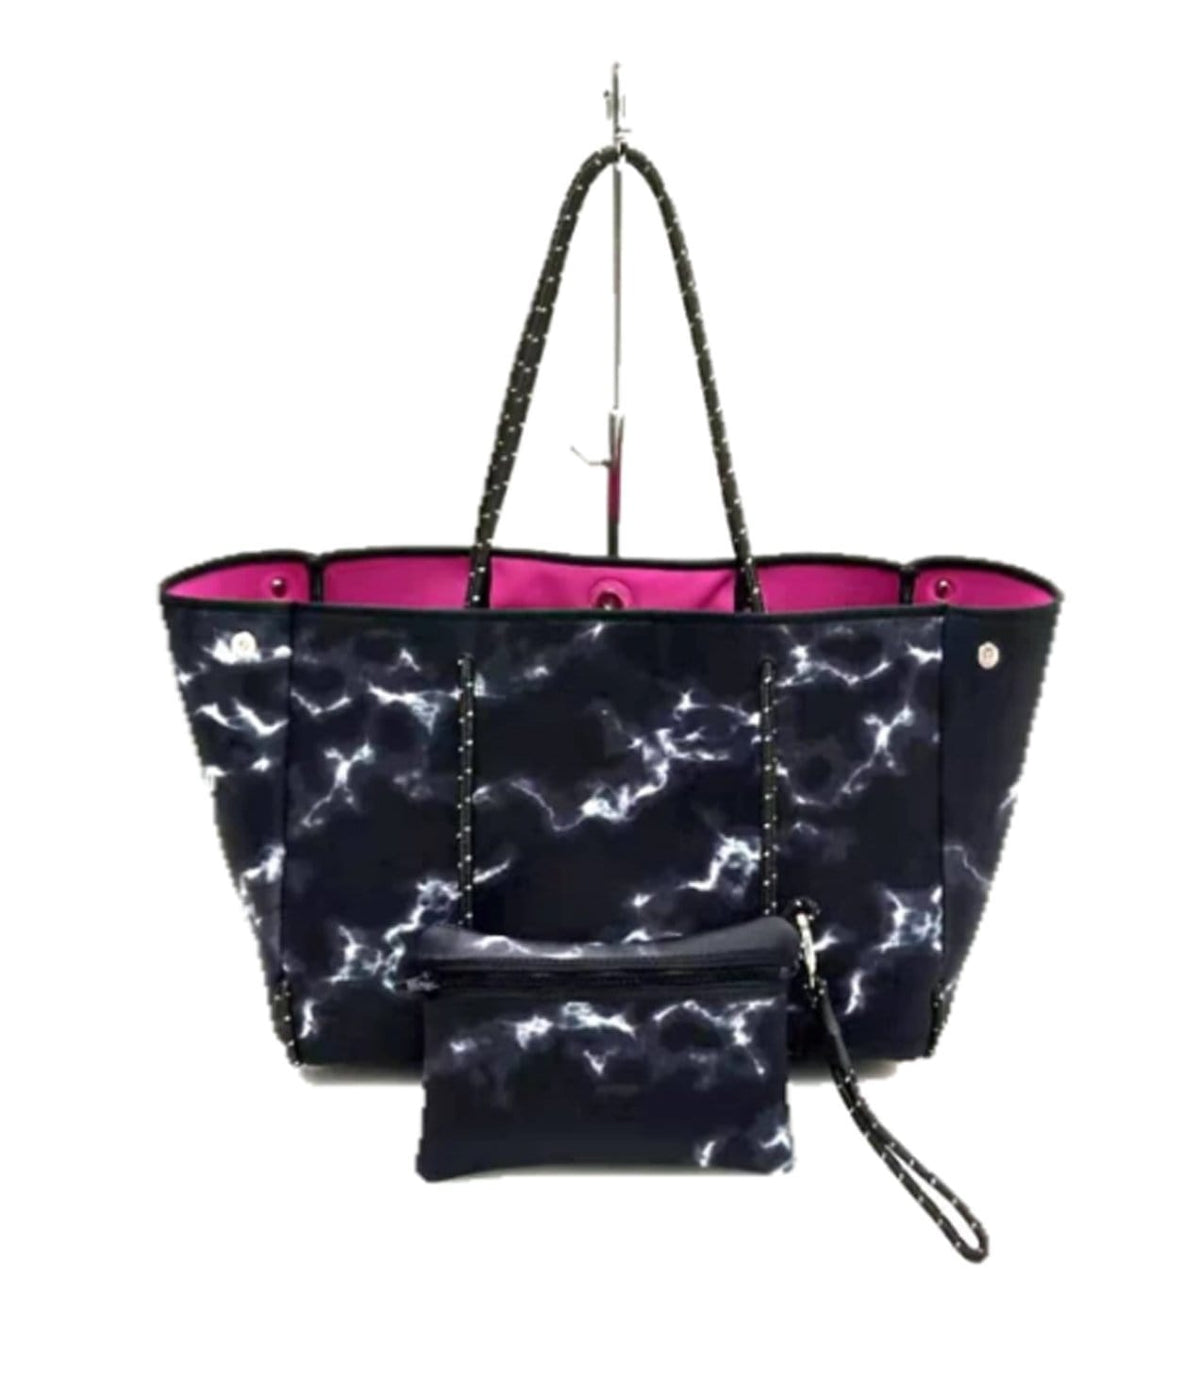 Haute Shore Bags Haute Shore Totes / Greyson Storm equestrian team apparel online tack store mobile tack store custom farm apparel custom show stable clothing equestrian lifestyle horse show clothing riding clothes horses equestrian tack store